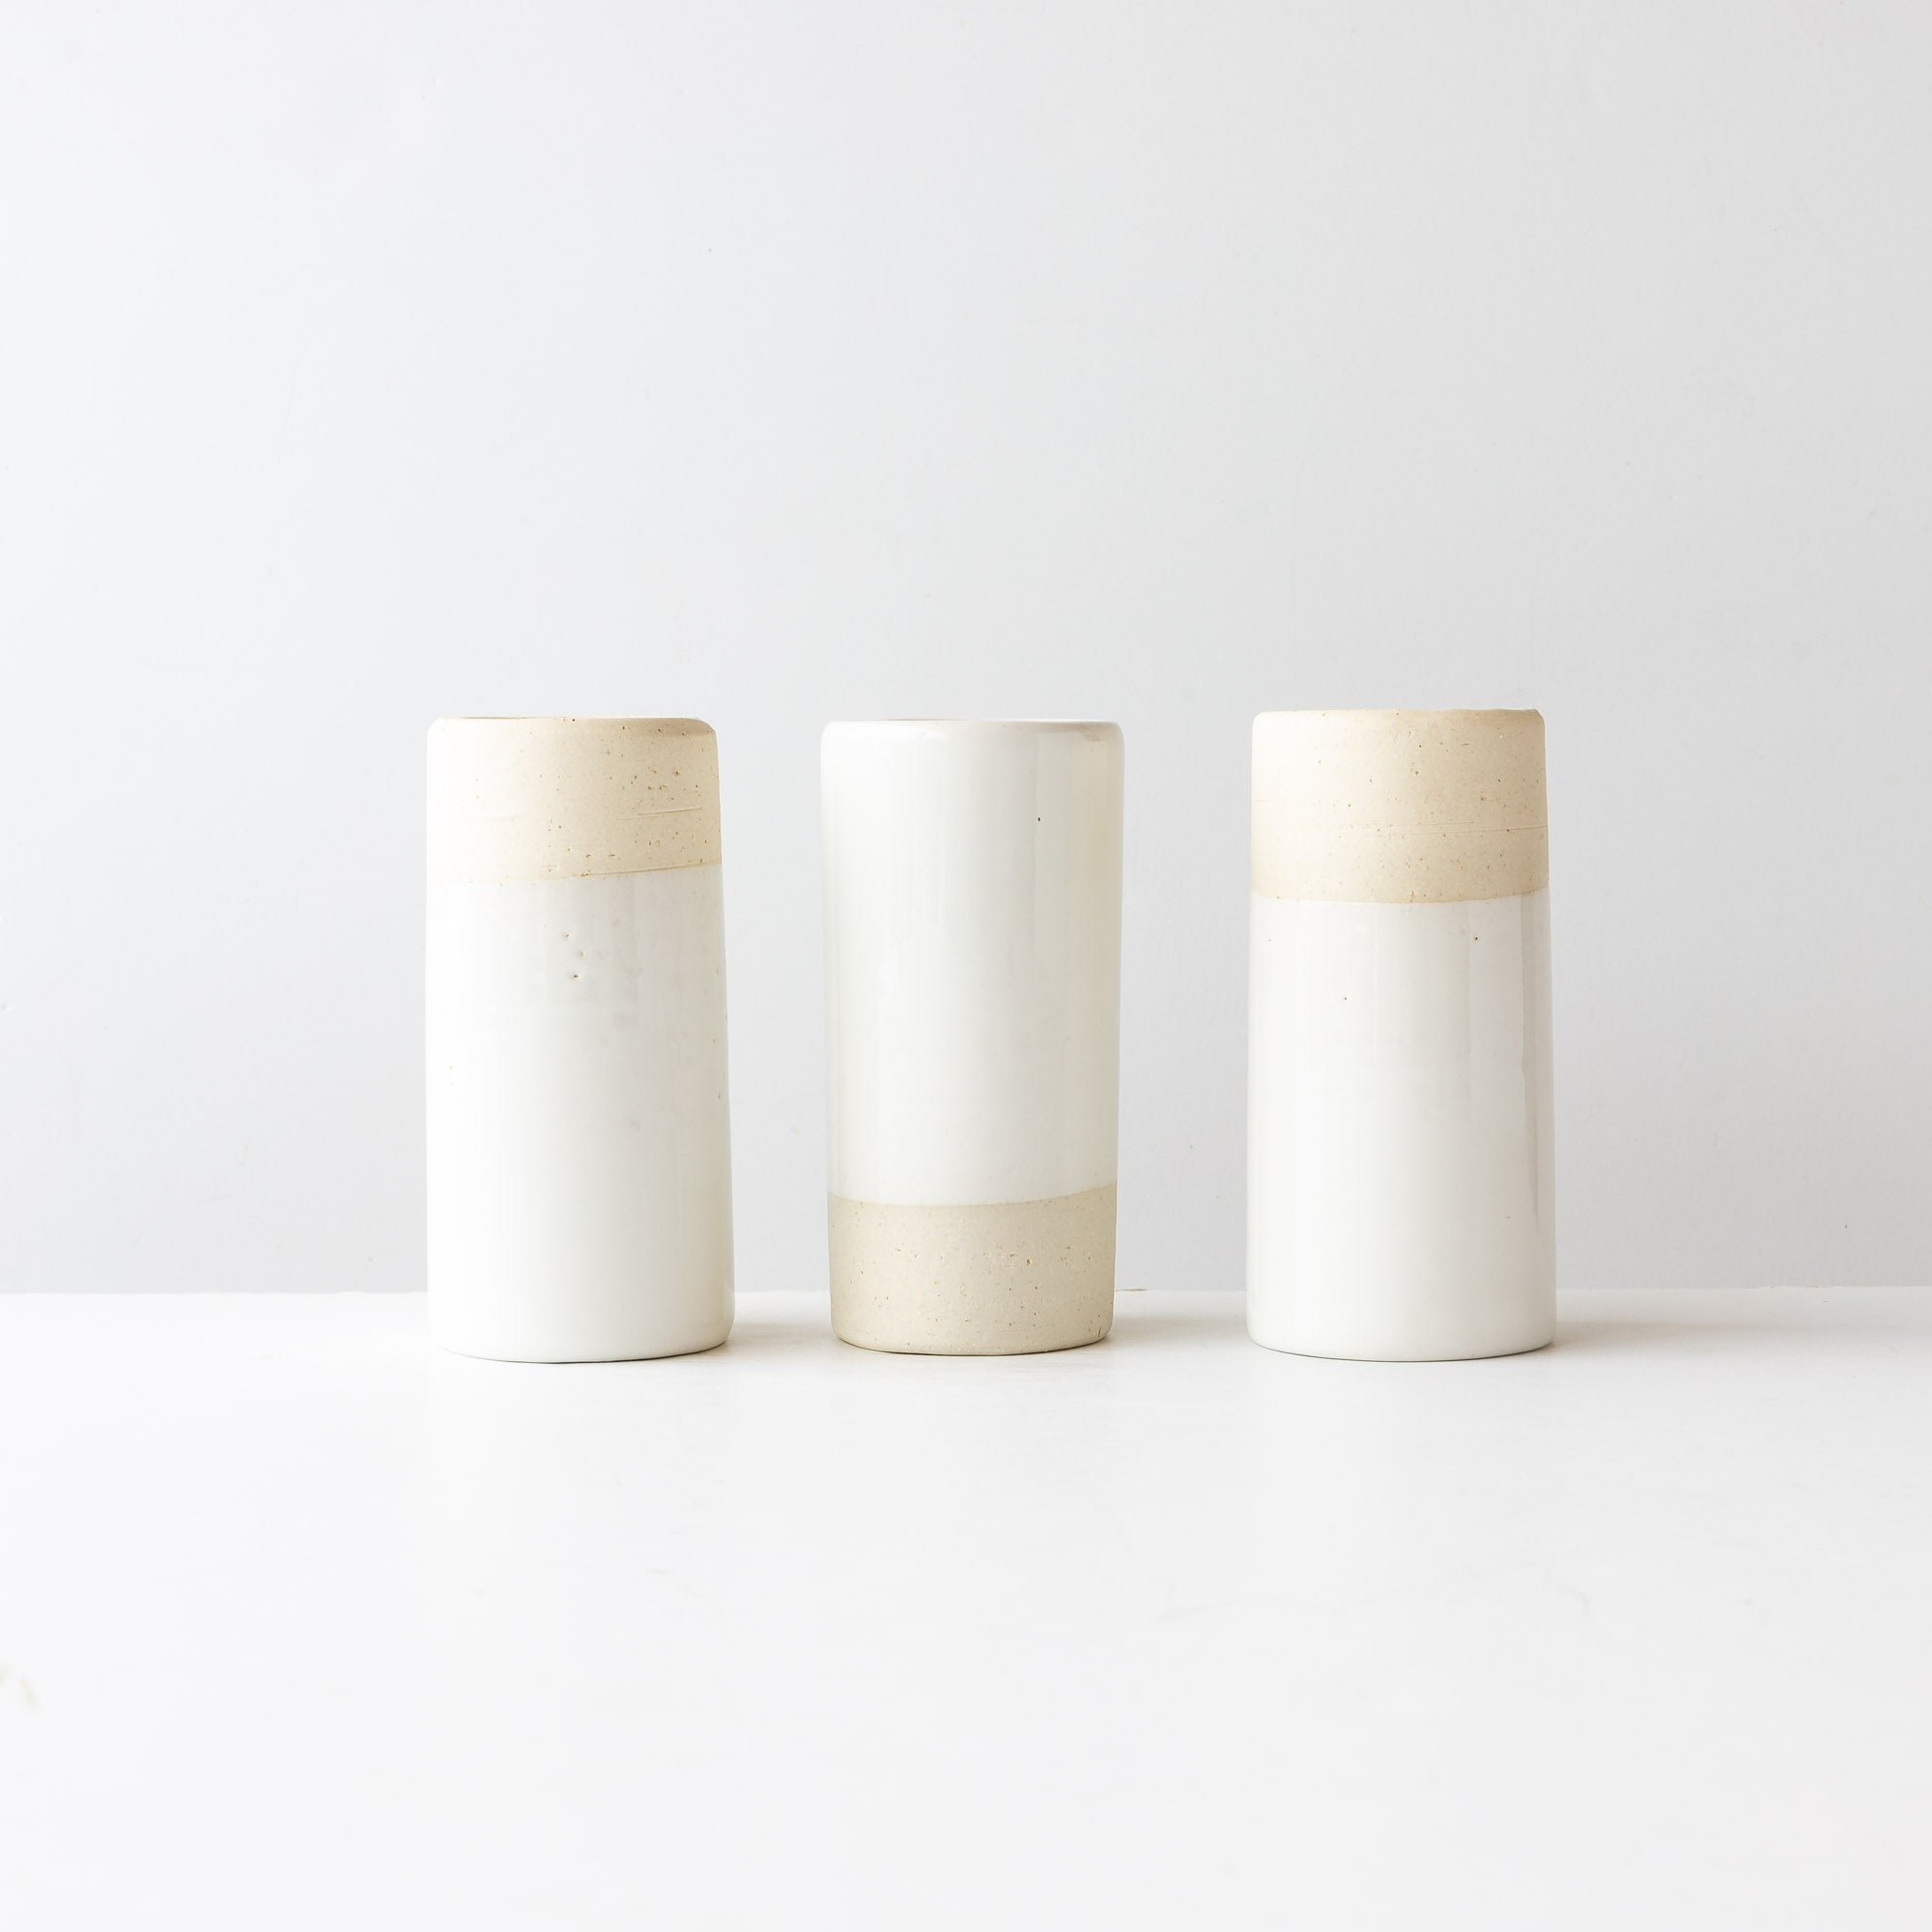 Three Handmade Contemporary Cylinder Ceramic Cups / Glasses - Sold by Chic & Basta